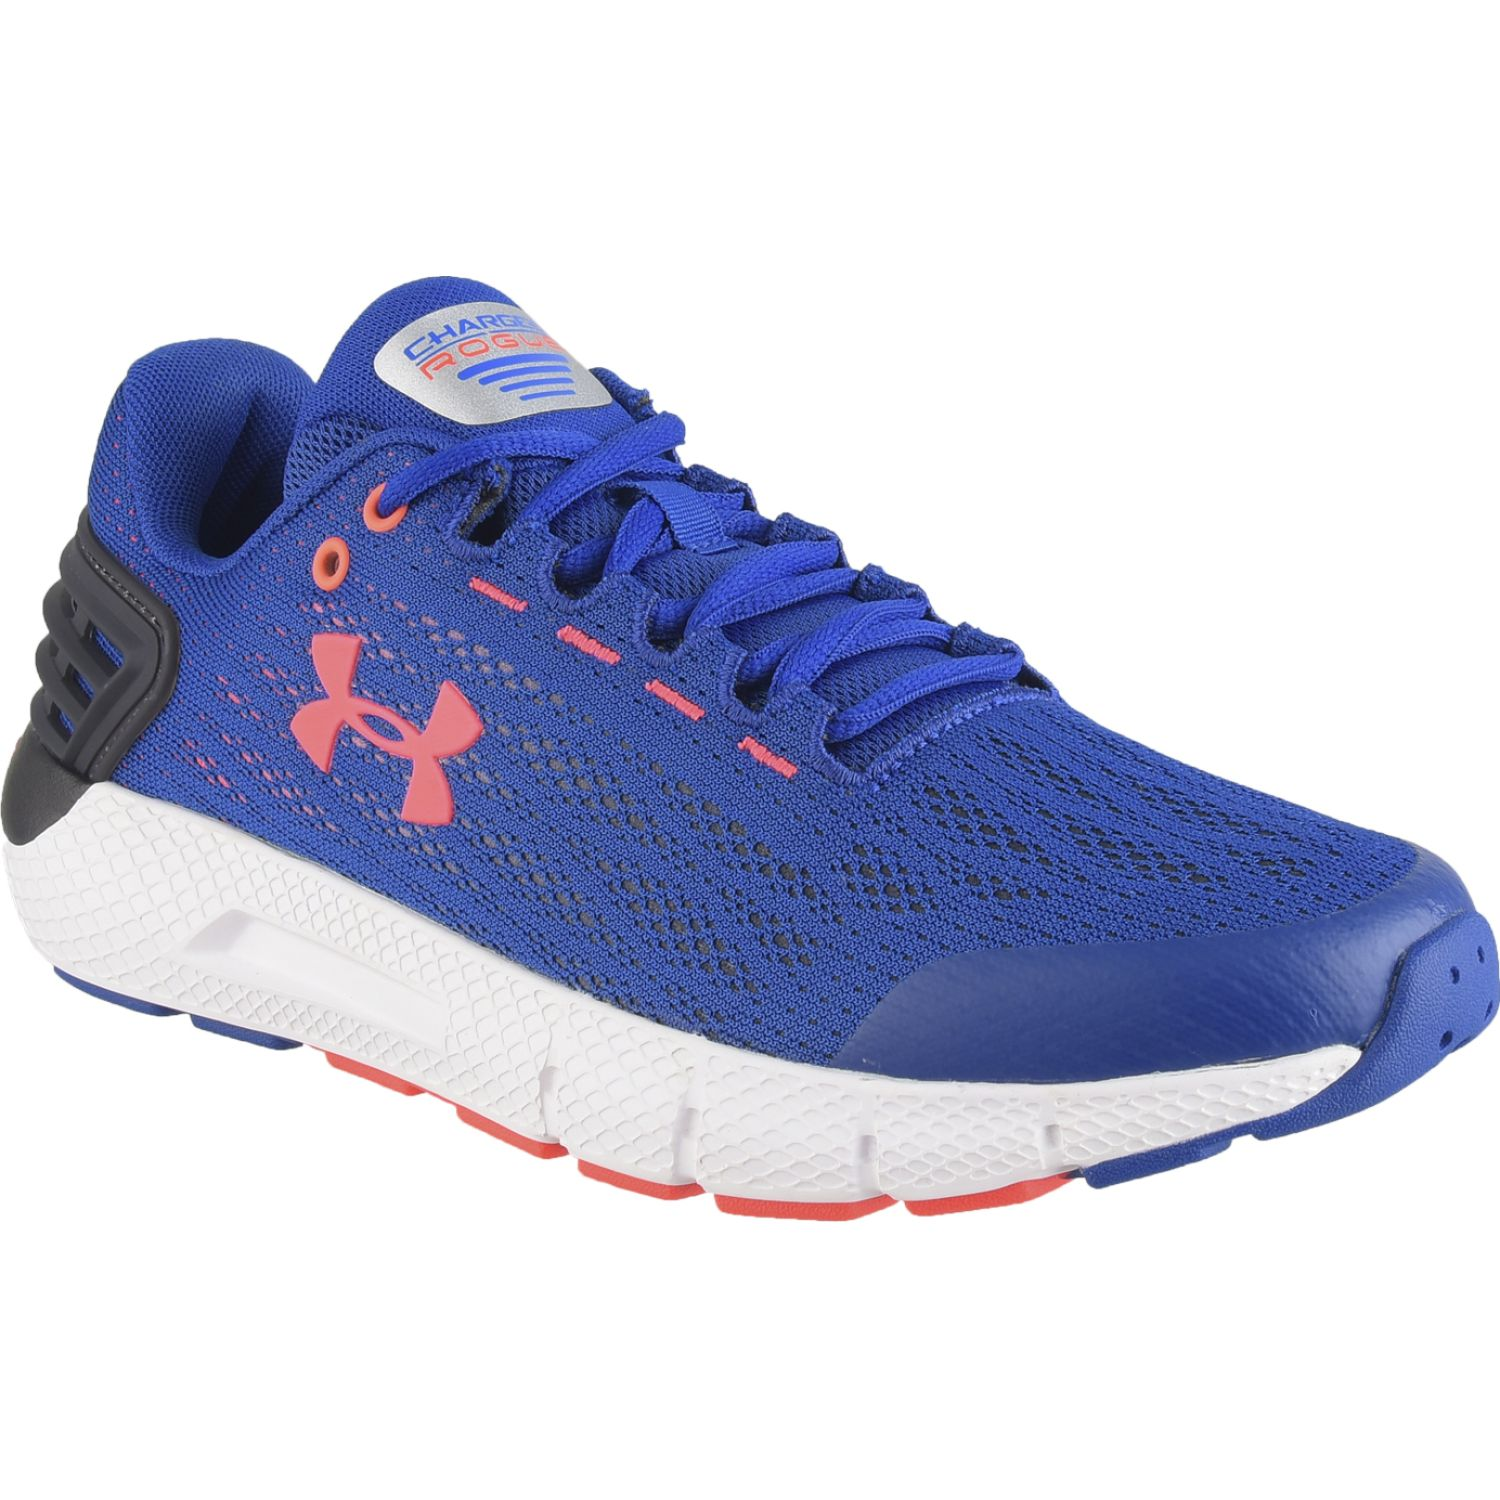 Under Armour ua bgs charged rogue Azul / blanco Muchachos